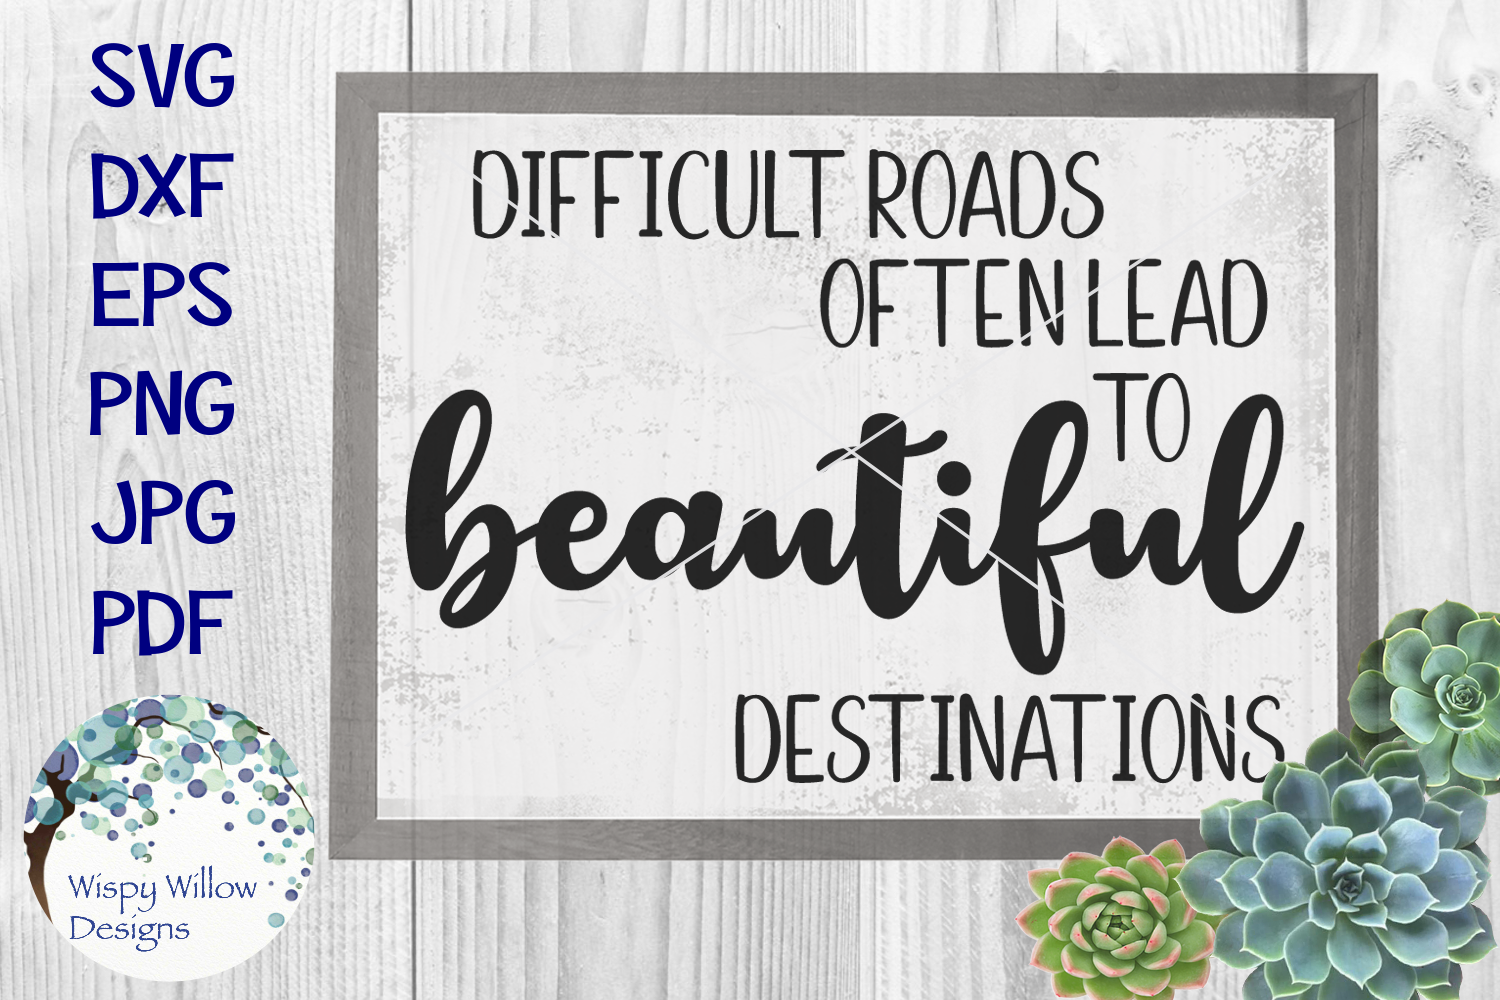 Difficult Roads Often Lead to Beautiful Destinations SVG example image 1